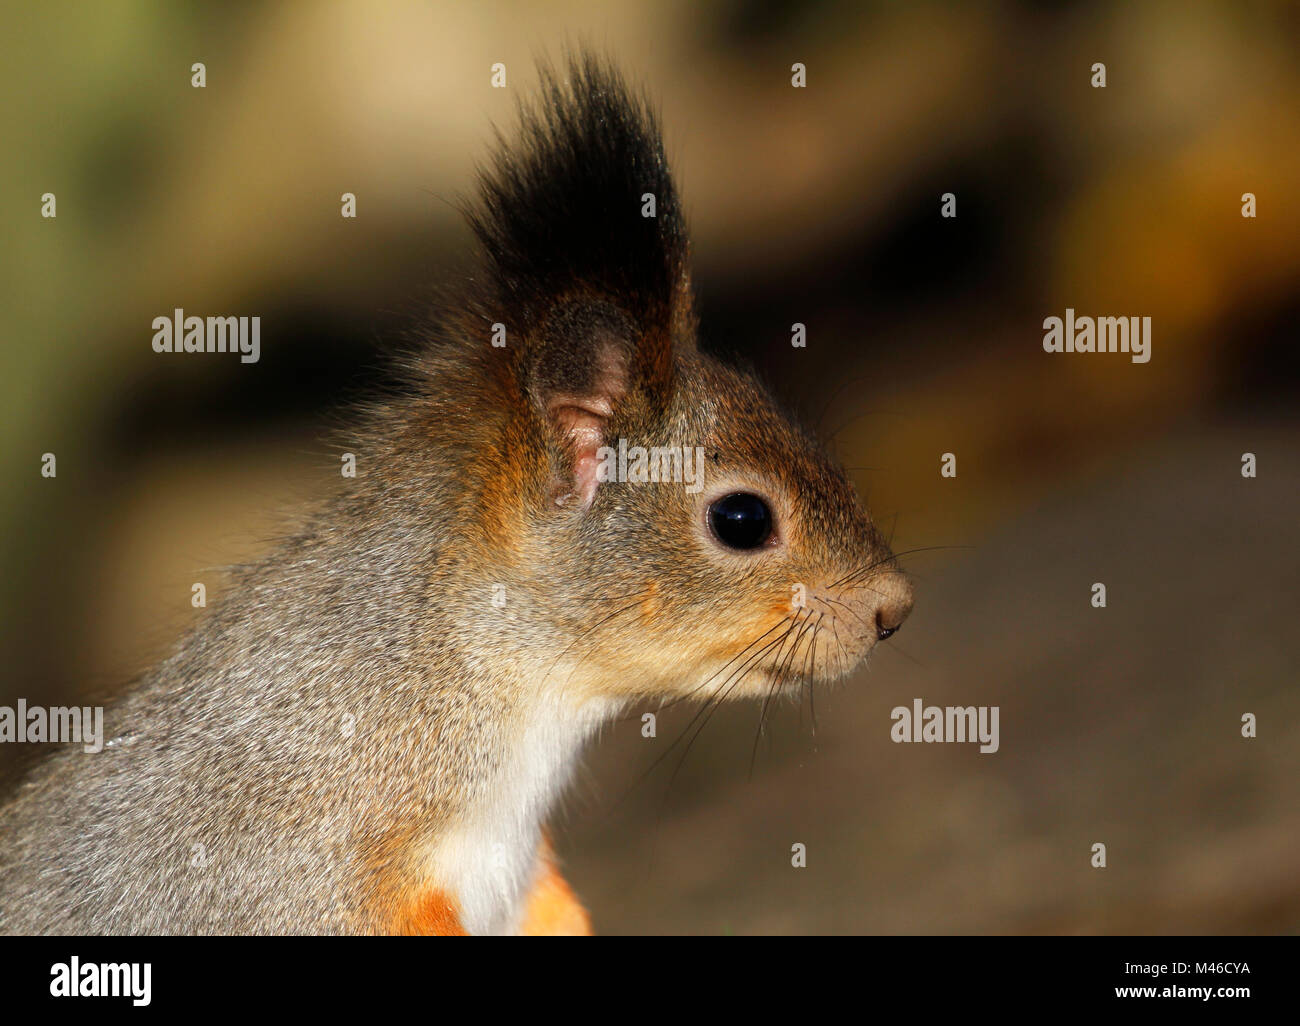 Head of the Red Squirrel Sciurus vulgaris seen from side, Finland. - Stock Image